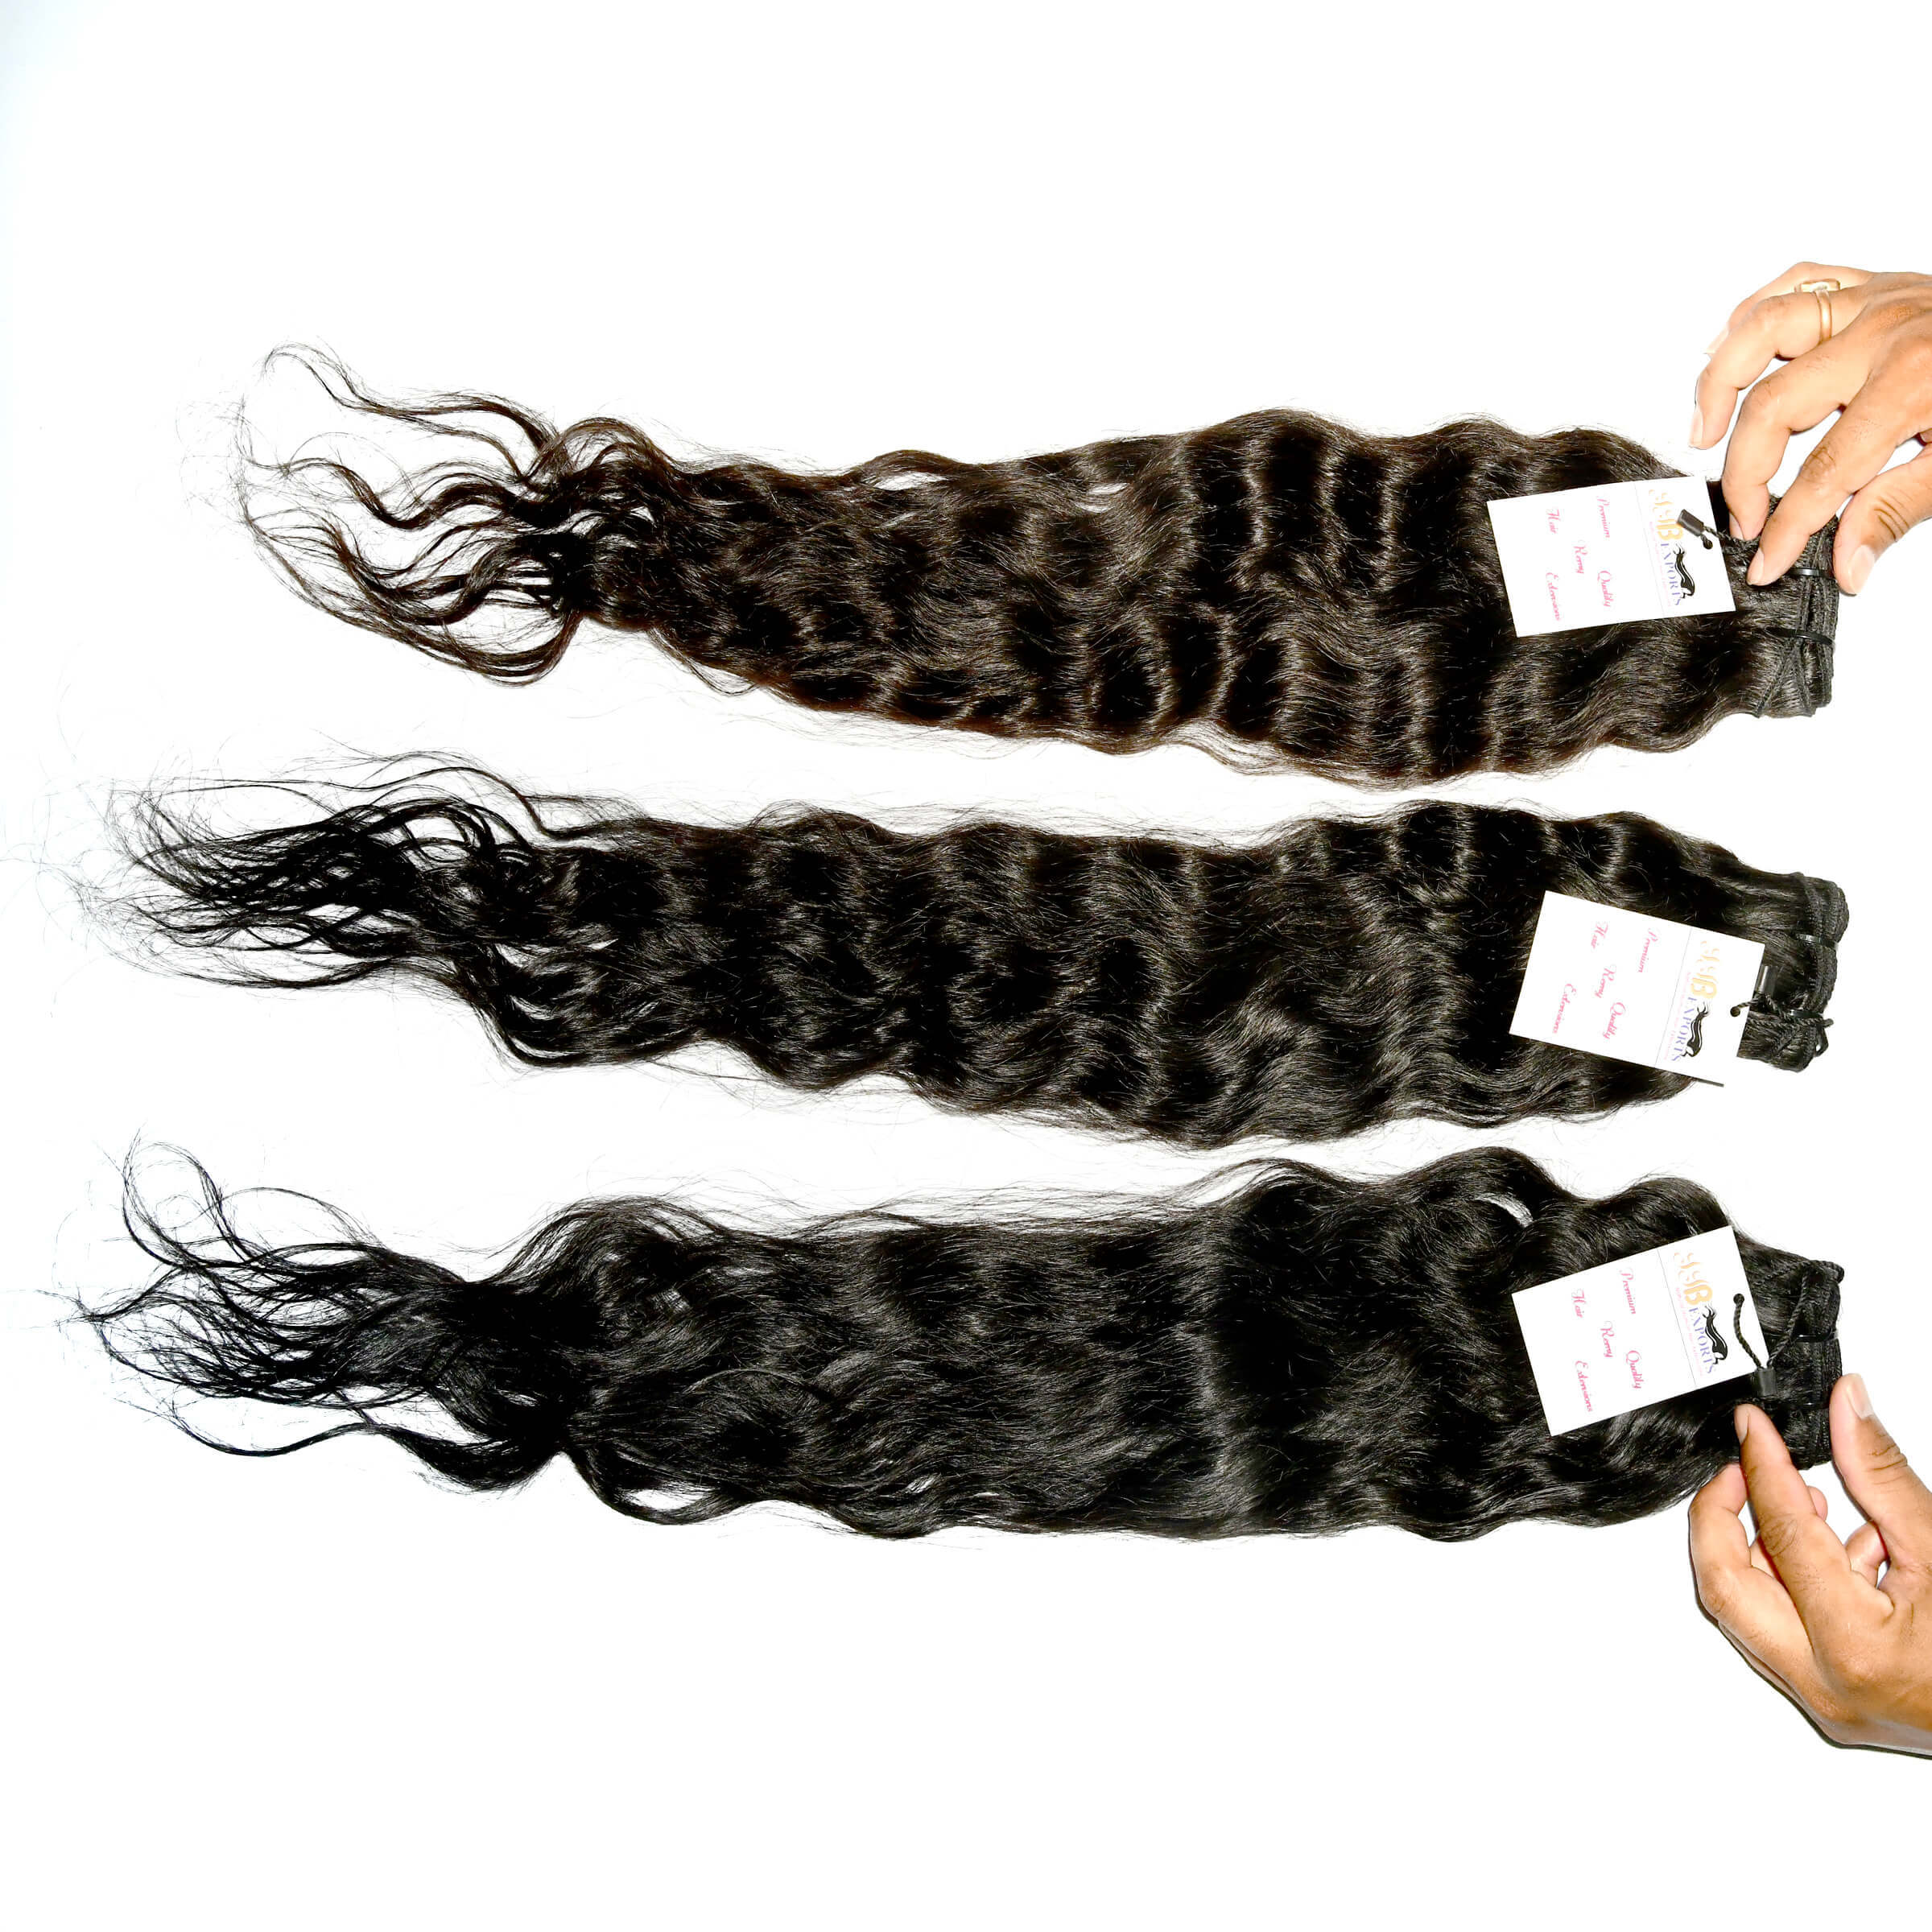 Brazilian Curly Bulk Raw Hair Unprocessed Factory Price, Indian Raw Soft & Silky Hair Bundle For Women